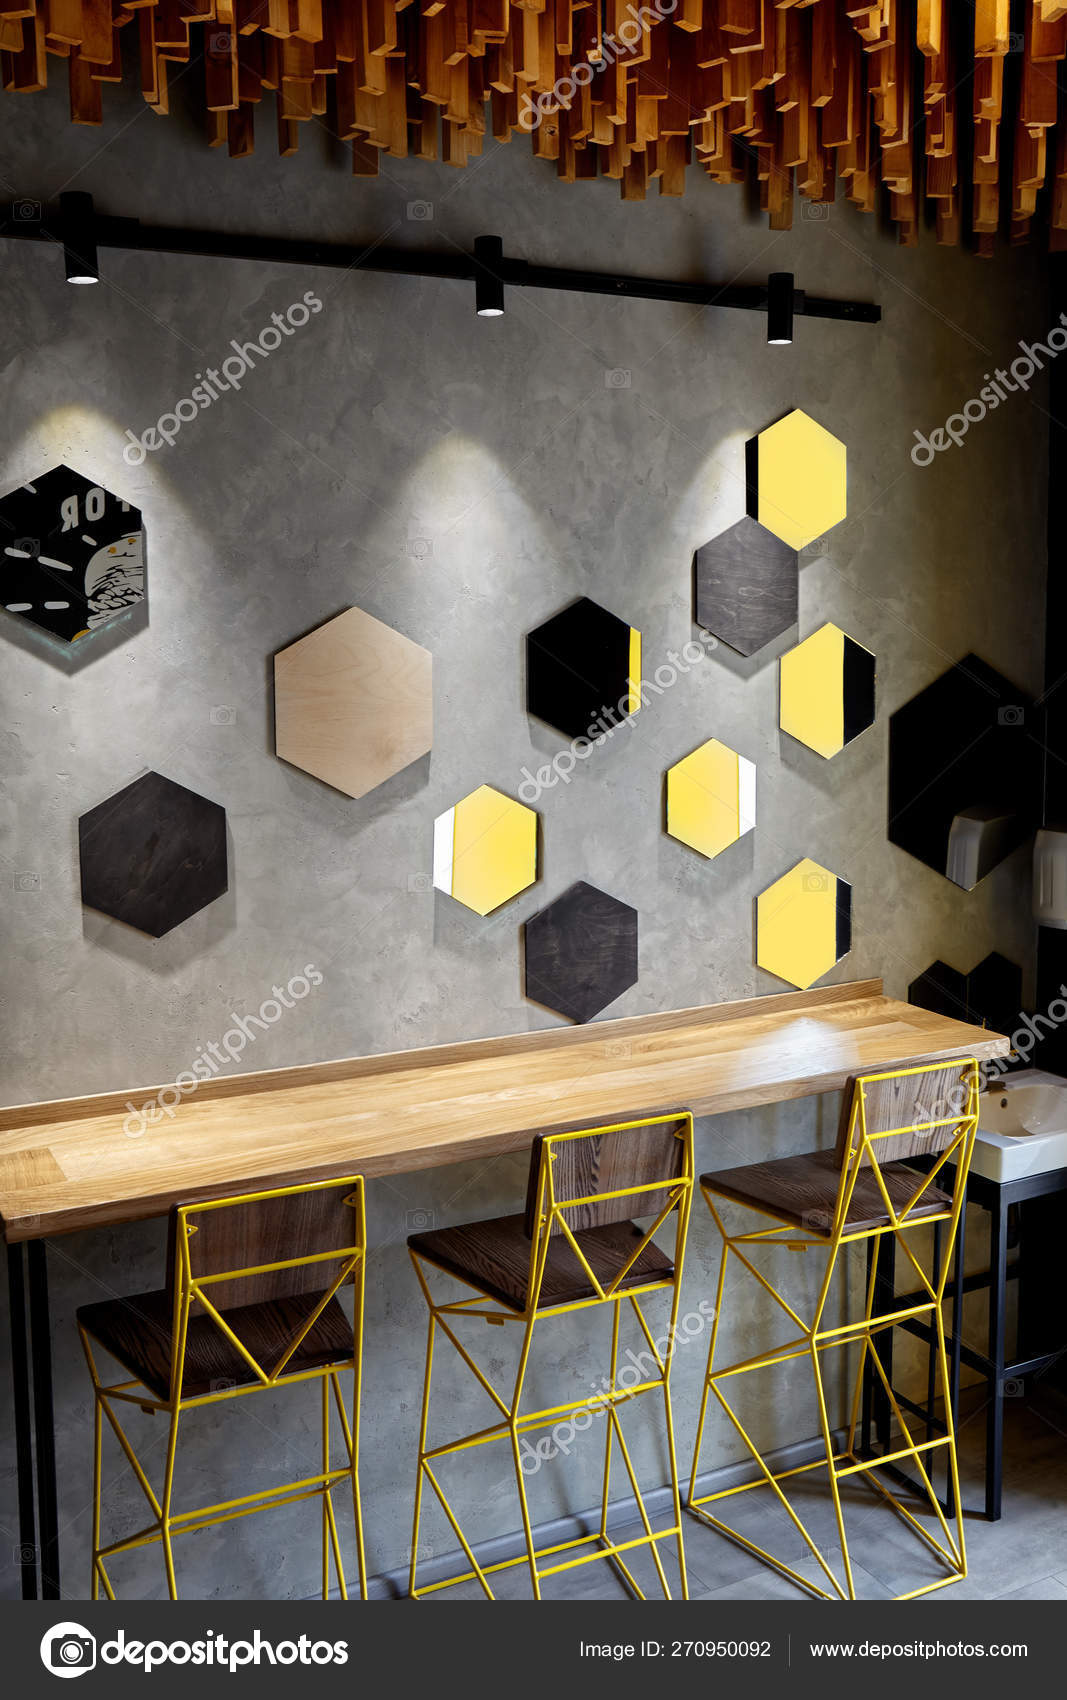 Interior of cafe . Loft space design, wooden table, concrete wall. creative  minimalistic cafe interior, simplicity and geometry concept, black and